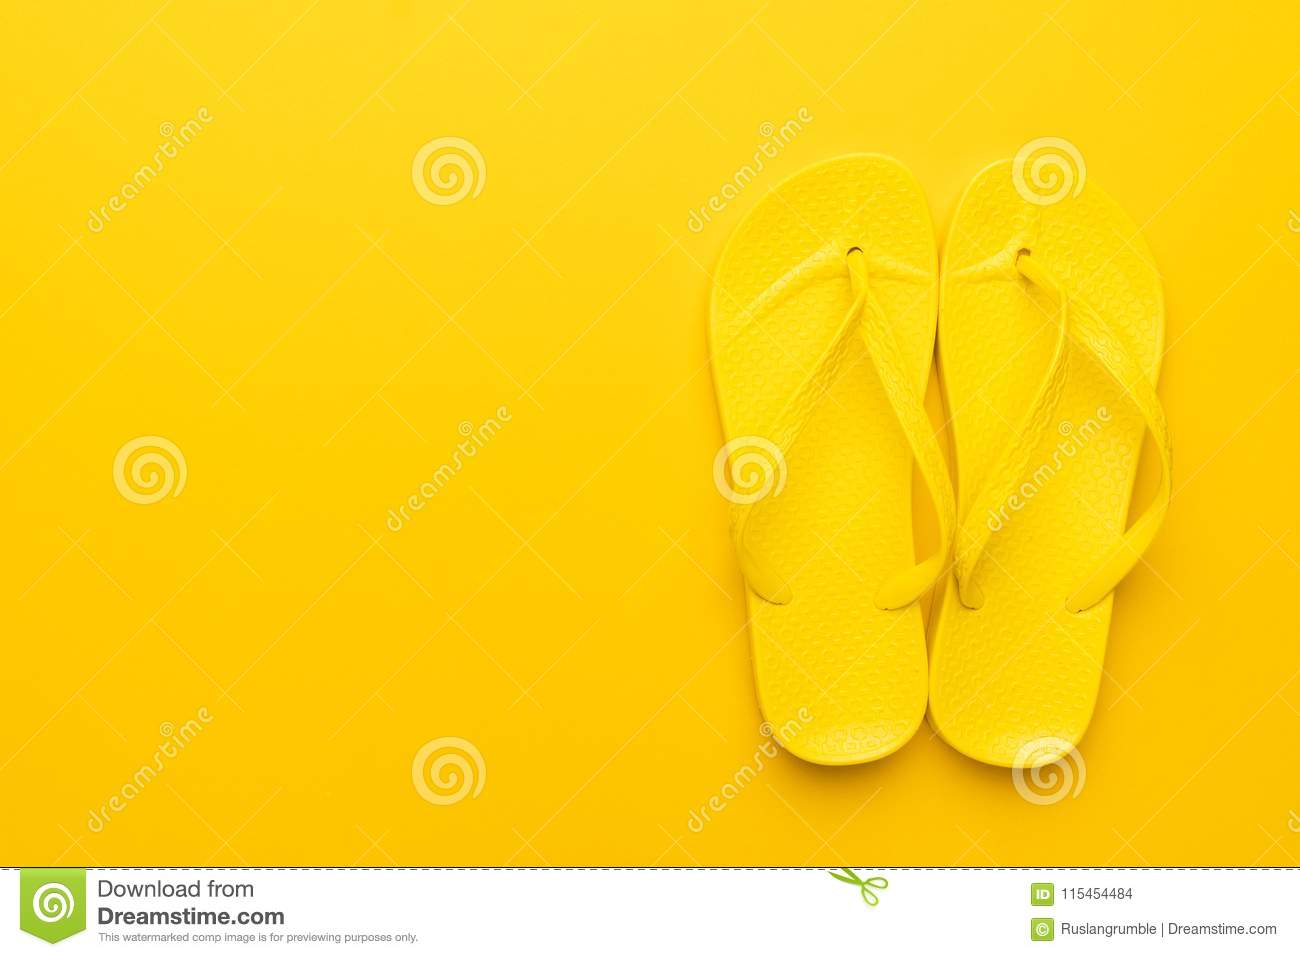 44c3e0a05e23 Beach flip-flops on the yellow background with copy space. summer is concept